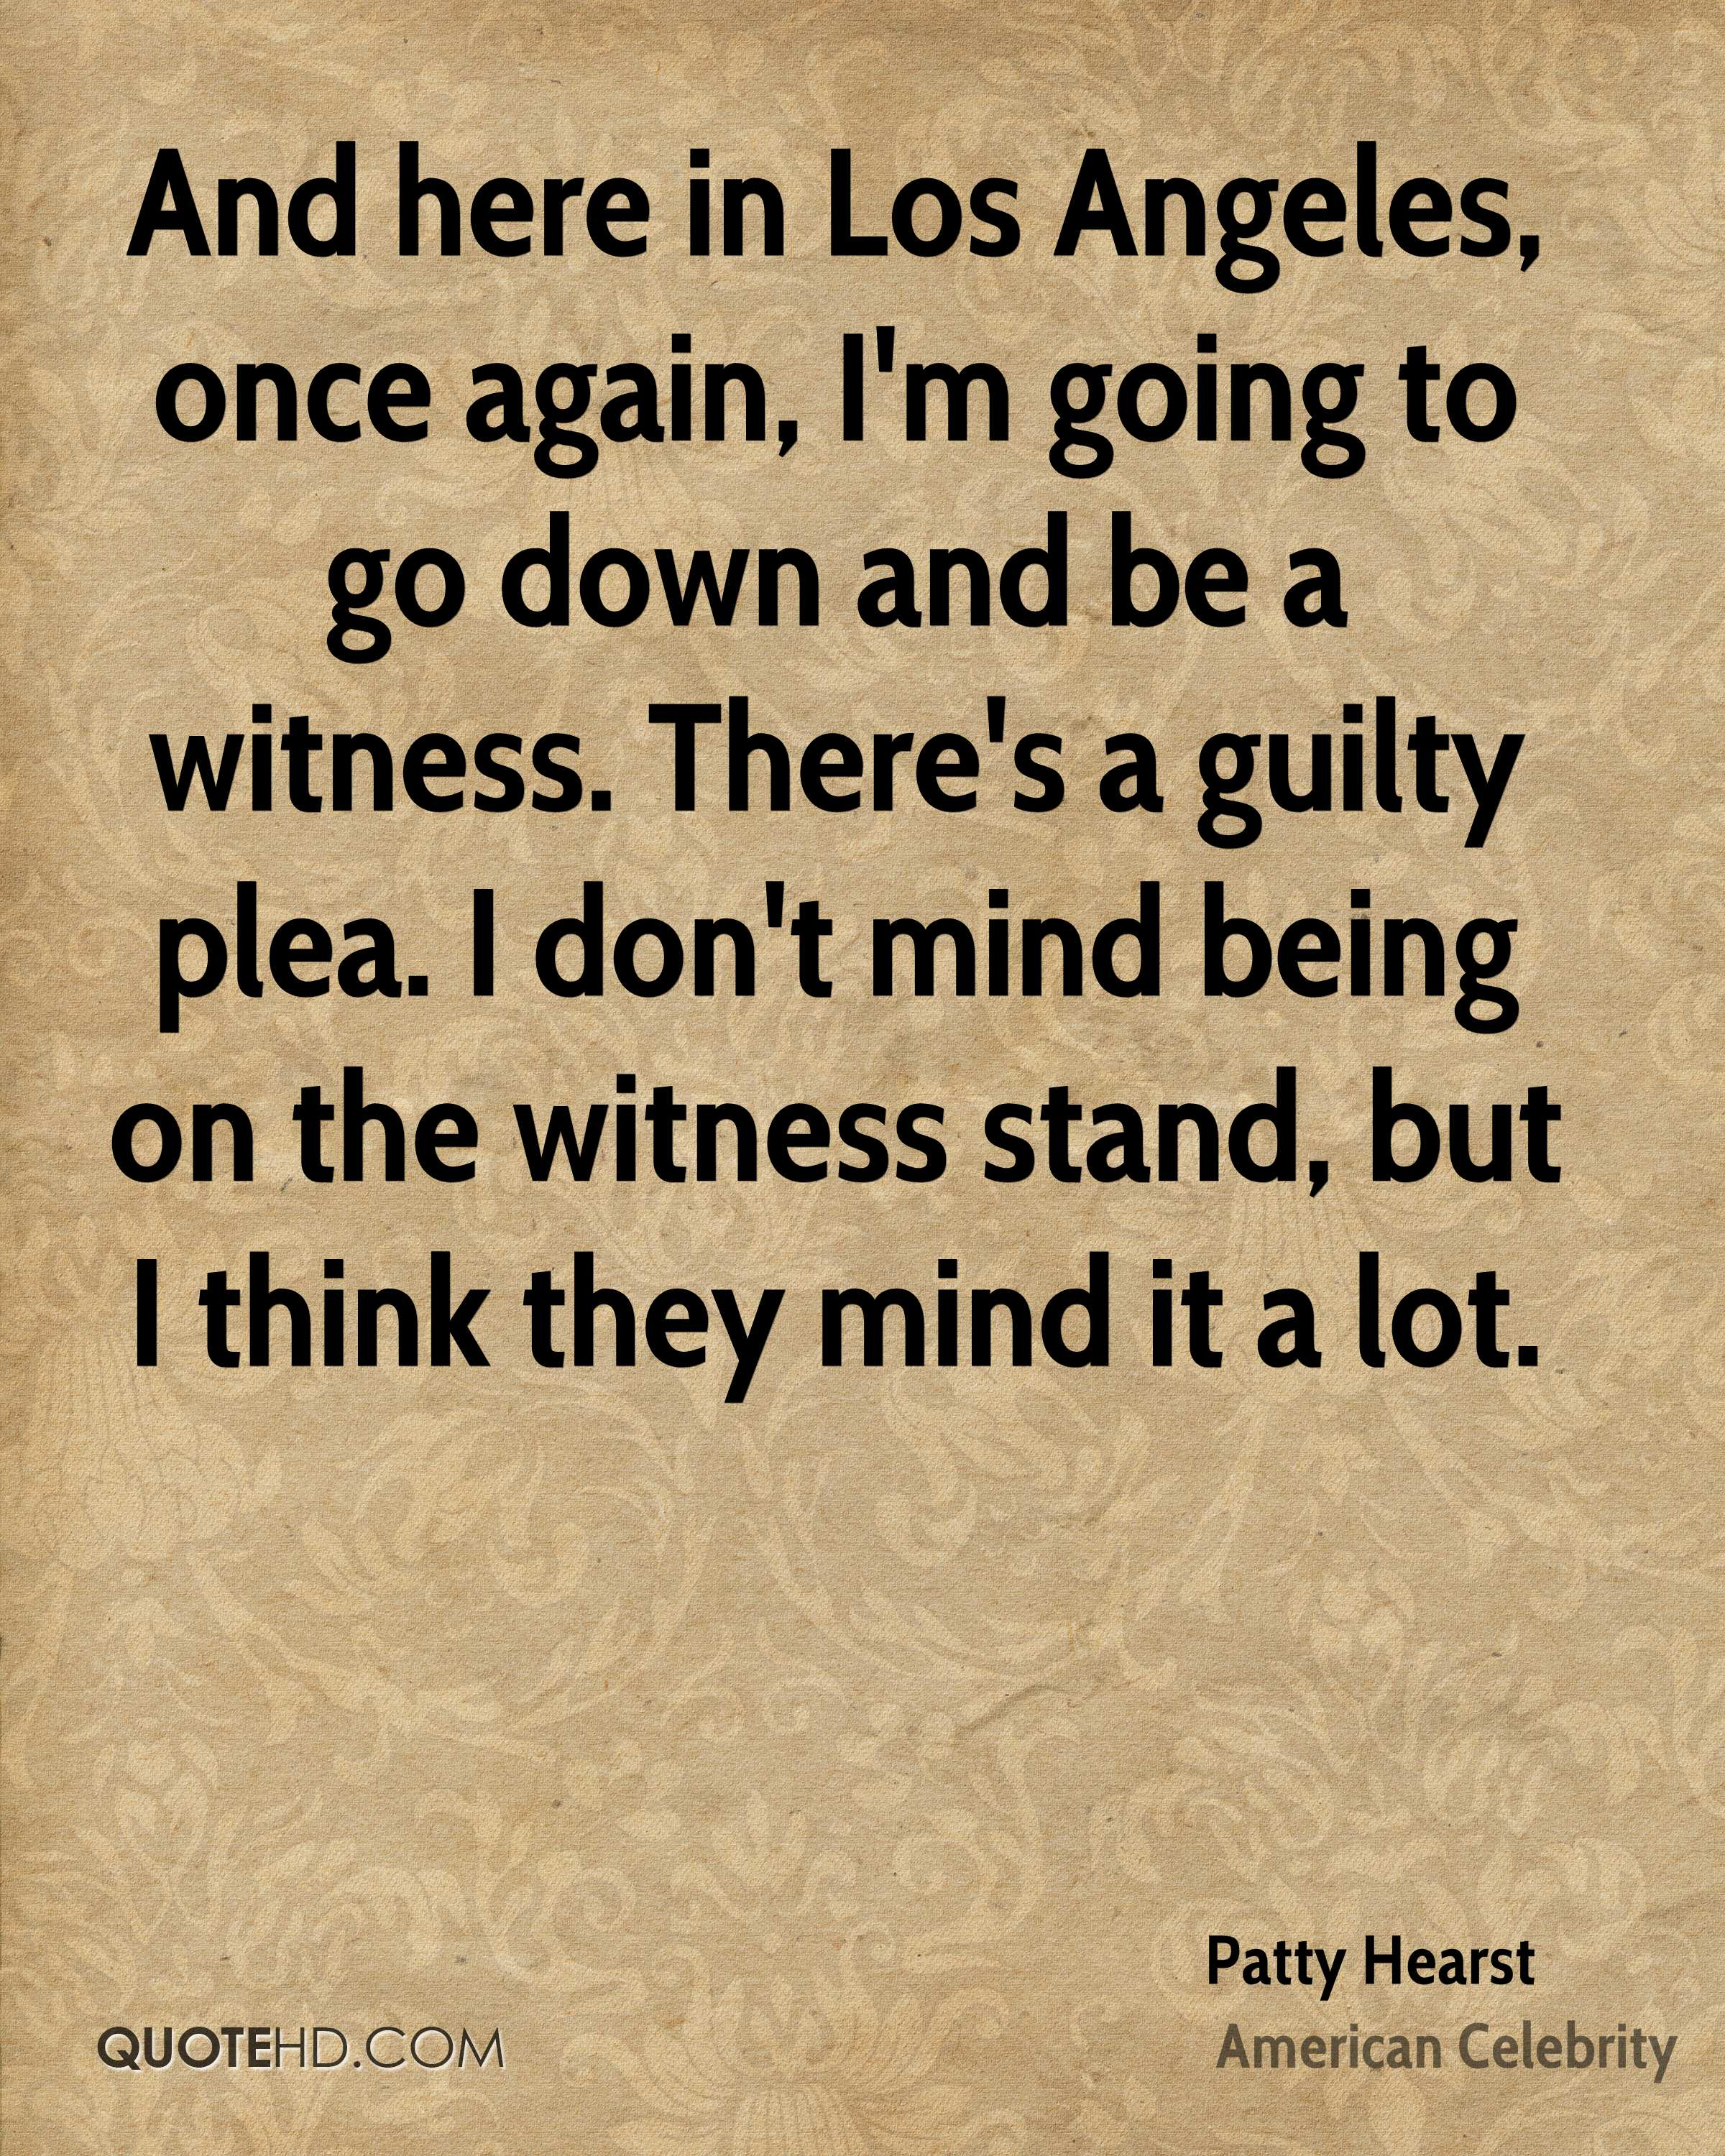 And here in Los Angeles, once again, I'm going to go down and be a witness. There's a guilty plea. I don't mind being on the witness stand, but I think they mind it a lot.